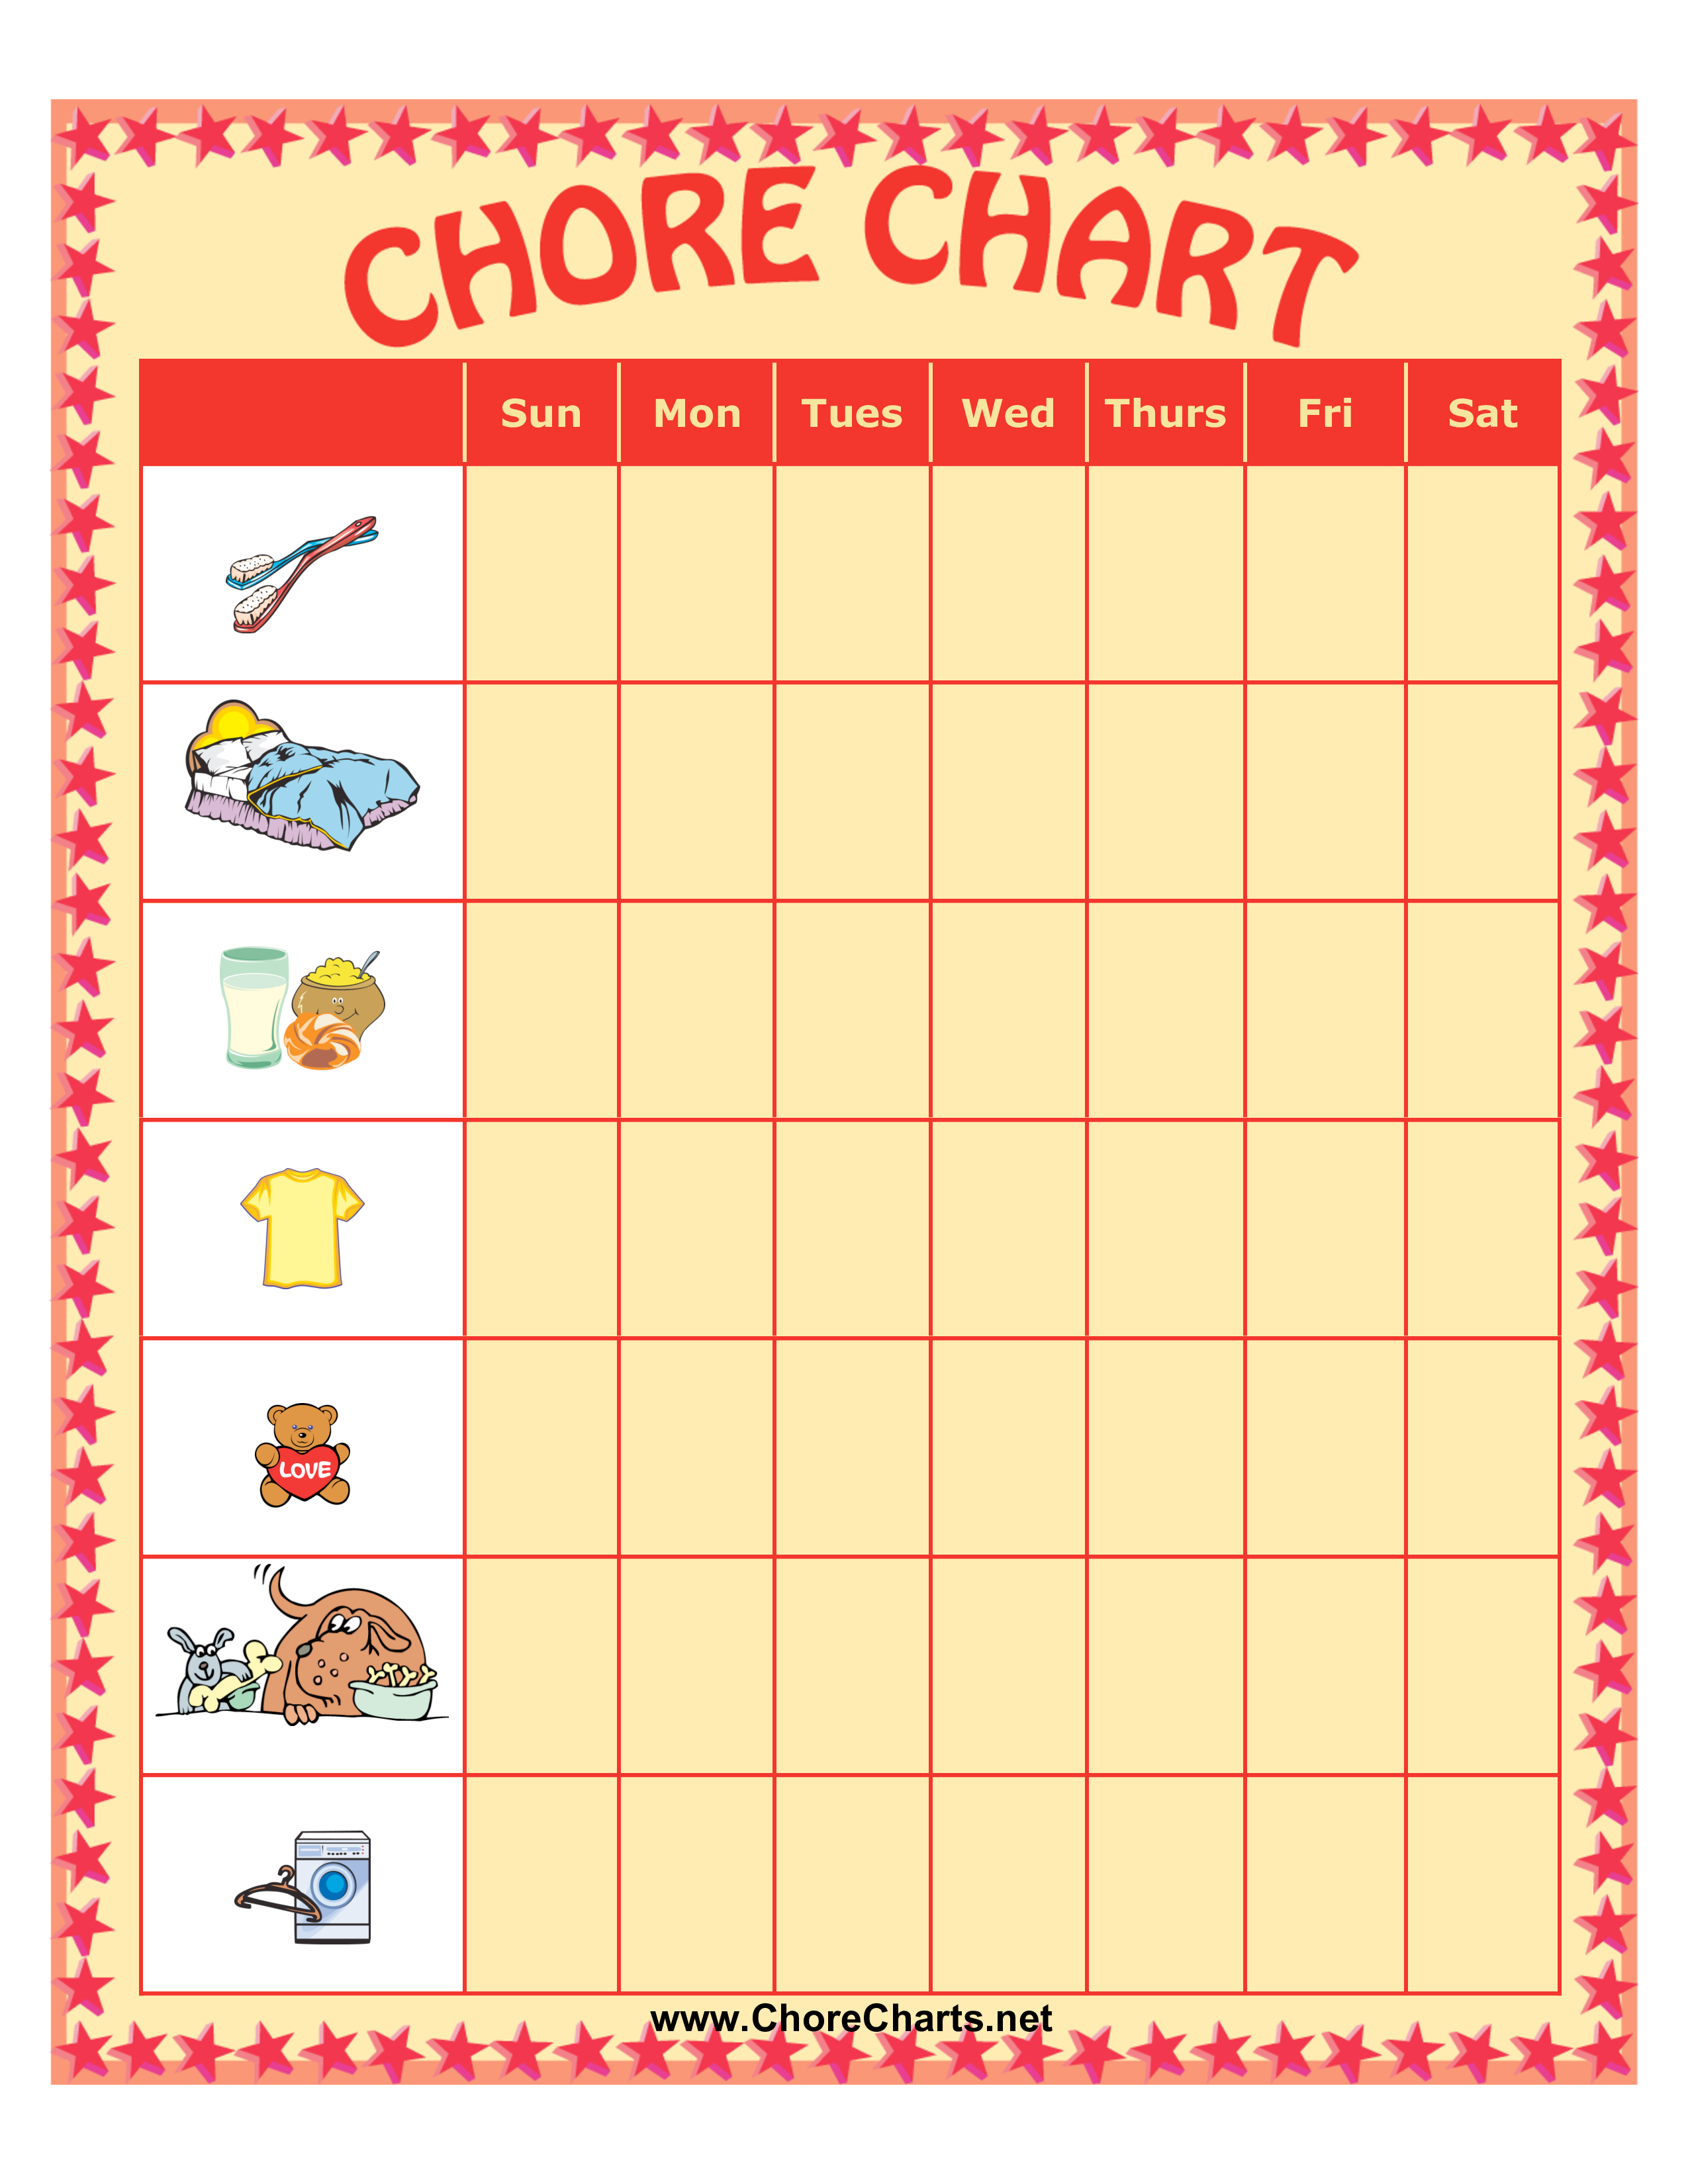 Chore Chart For Toddlers main image